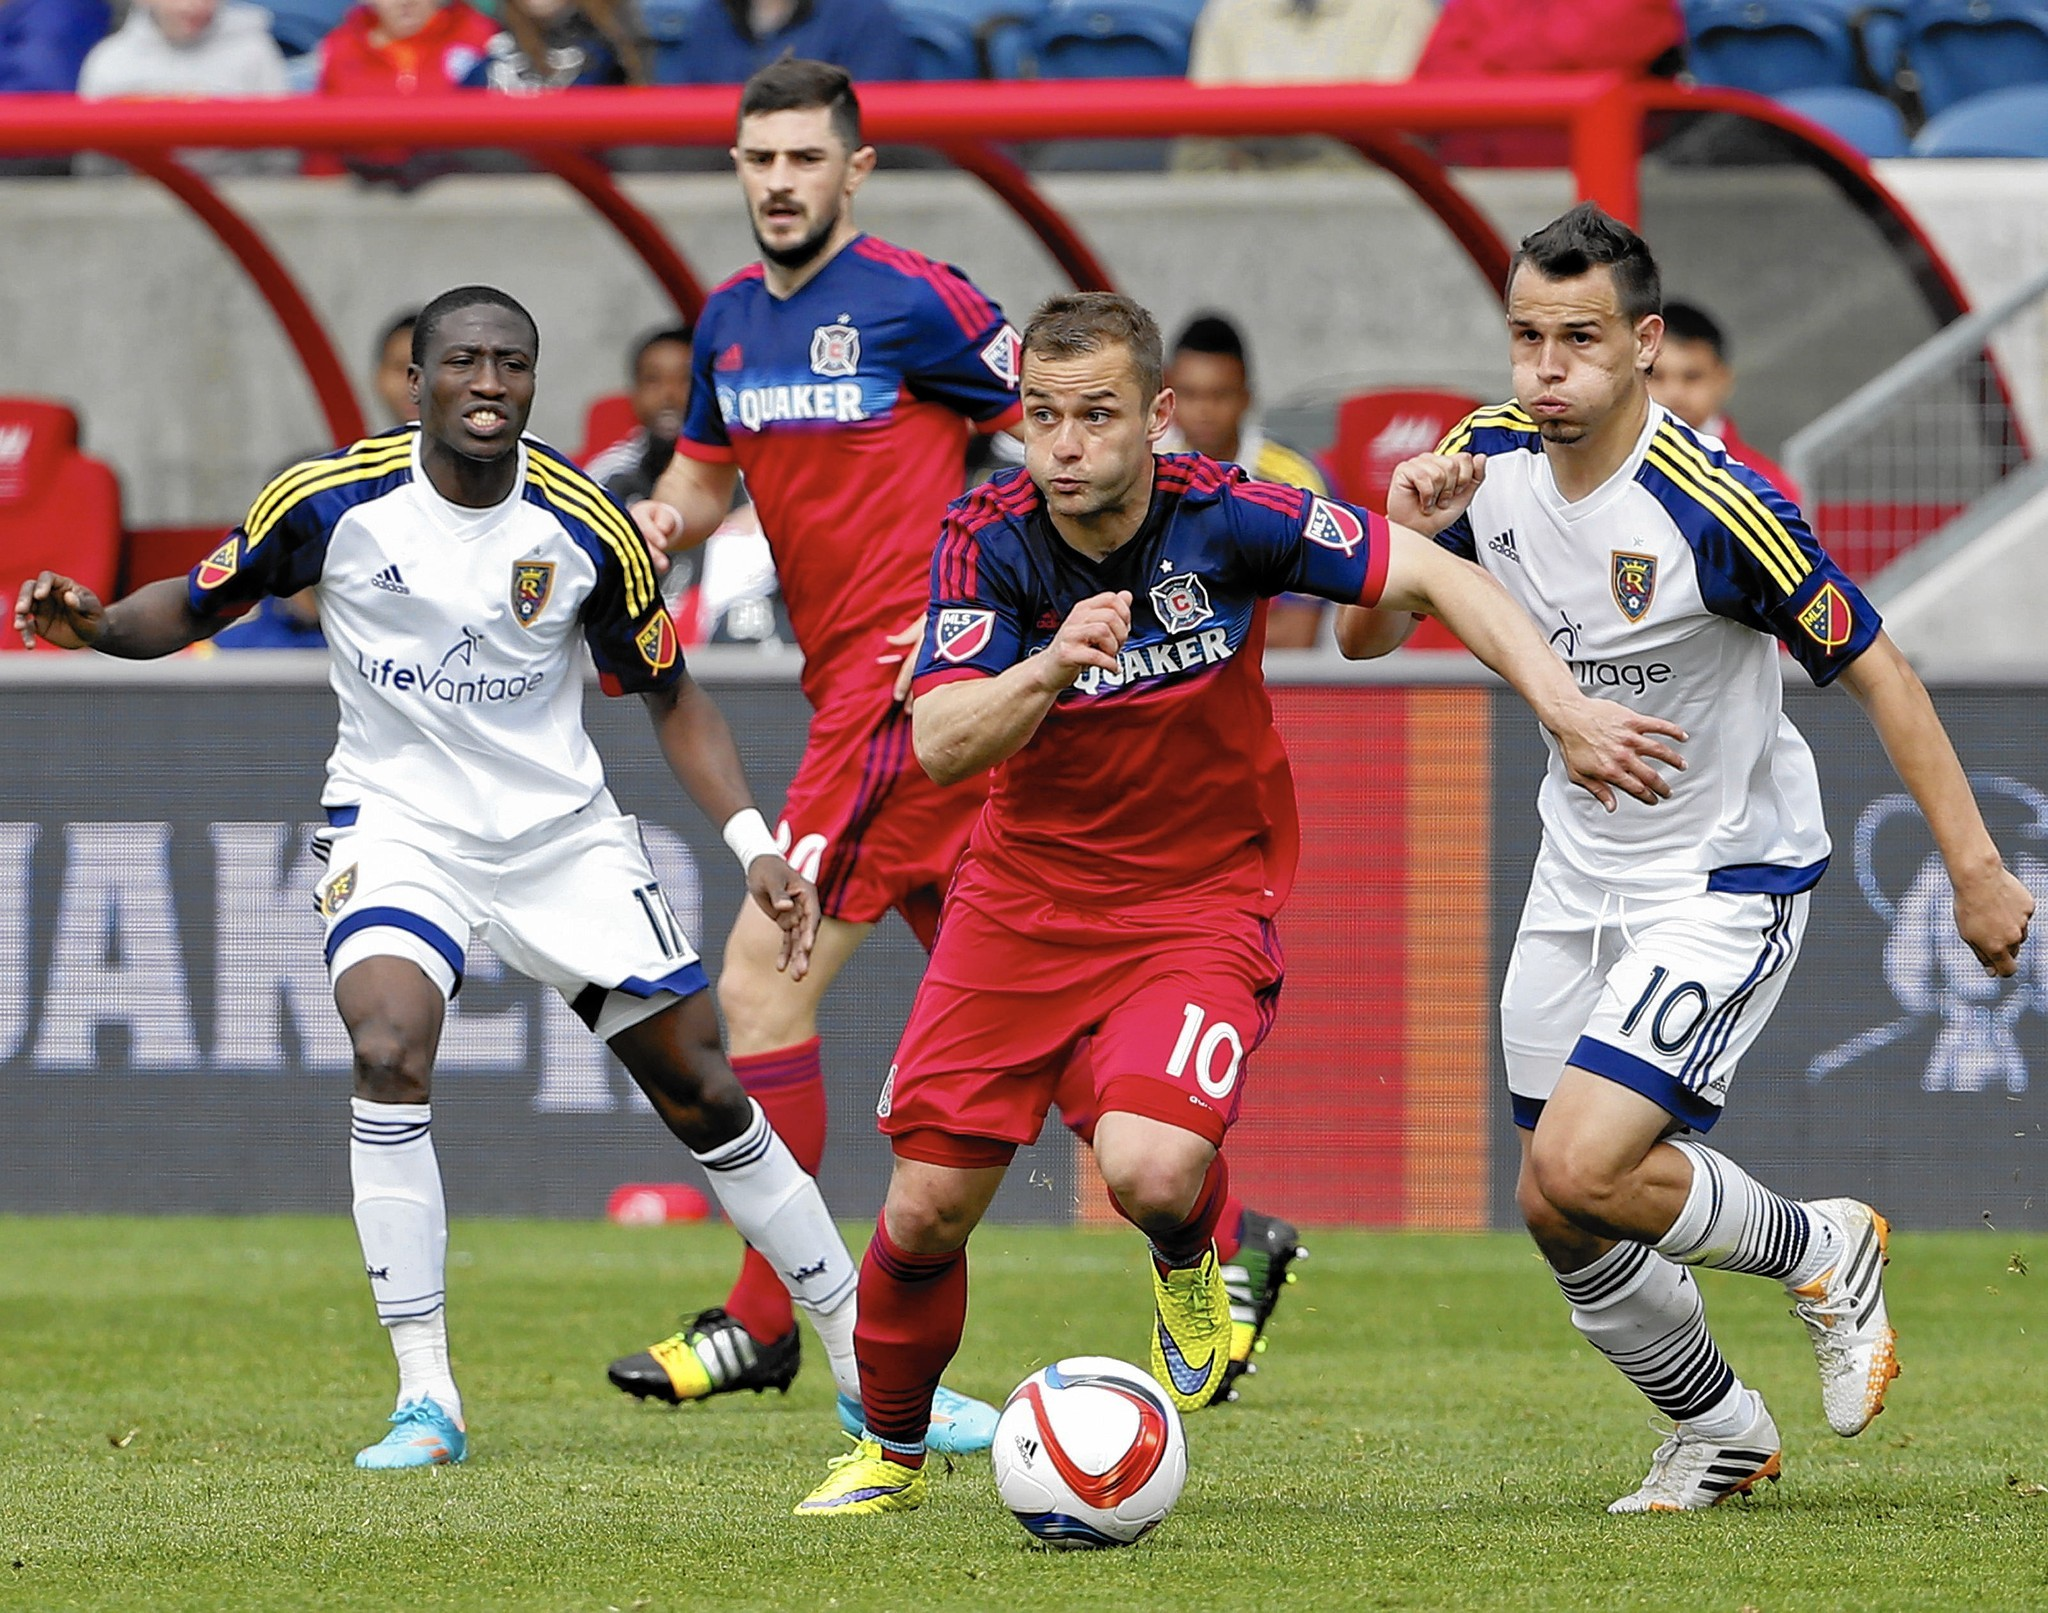 Lake City Toyota >> Chicago Fire soccer club overhauls roster in hopes of getting back to playoffs - Orlando Sentinel